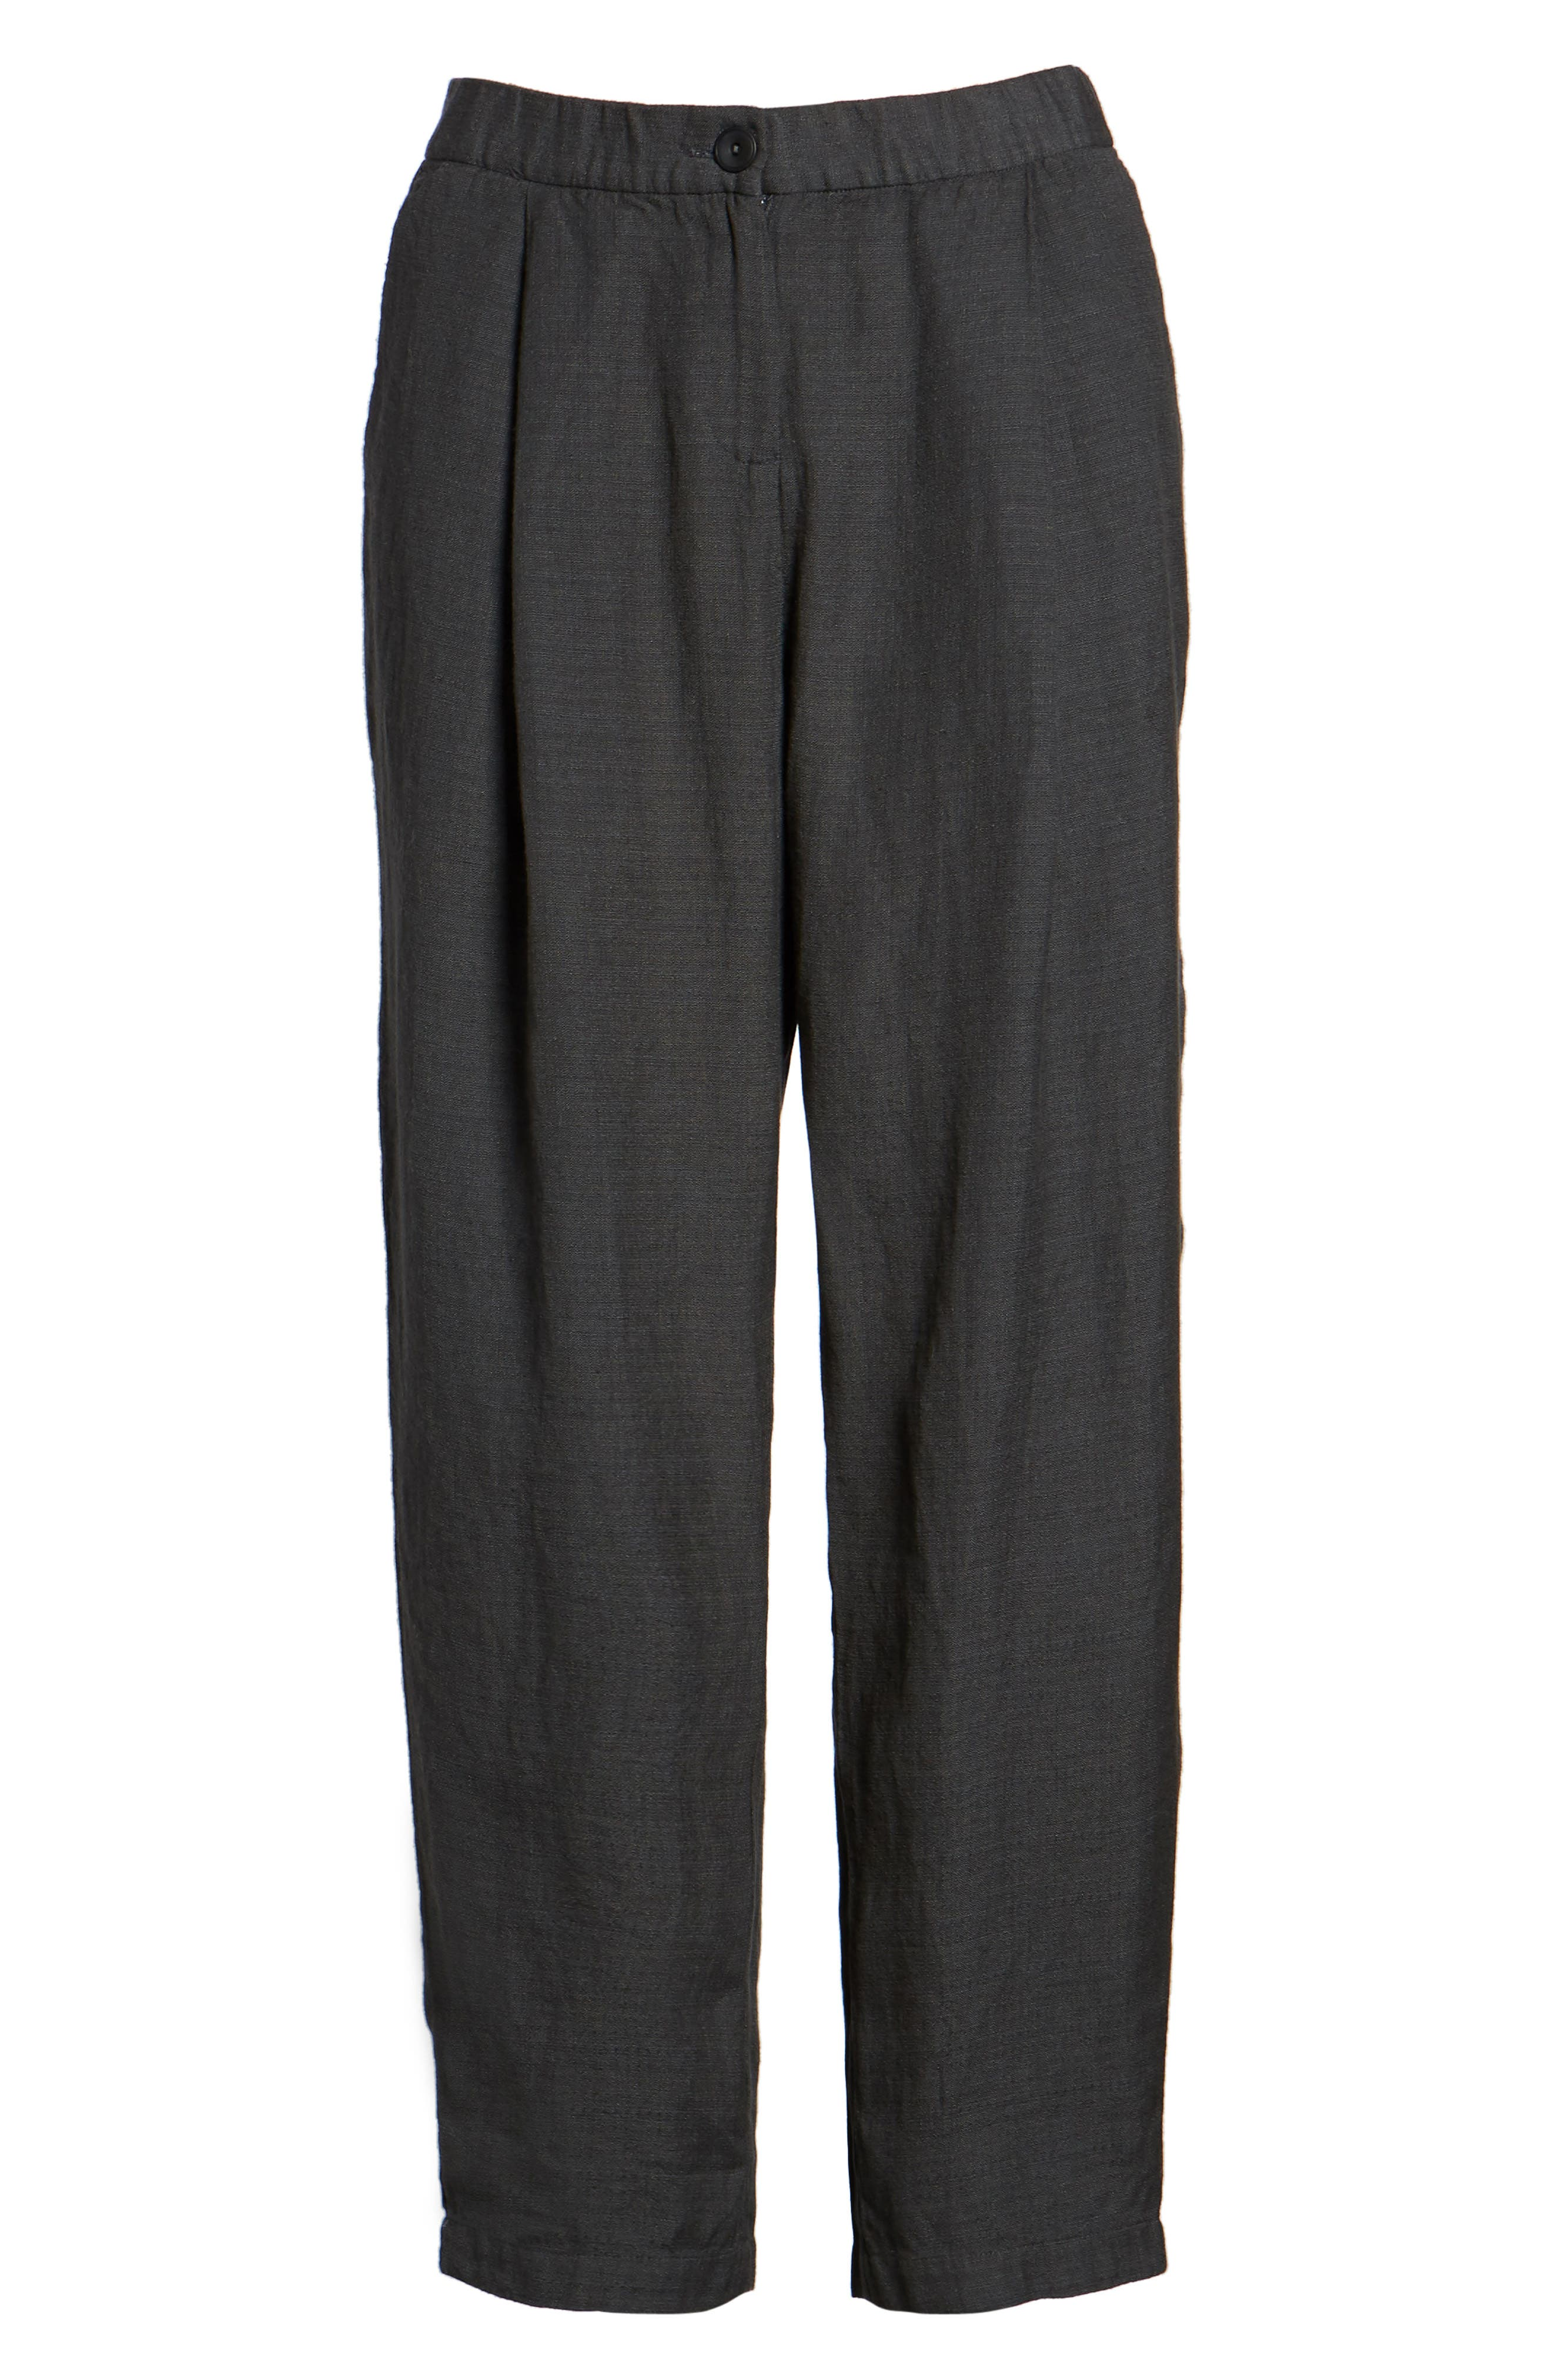 Pleated Linen Blend Ankle Trousers,                             Alternate thumbnail 12, color,